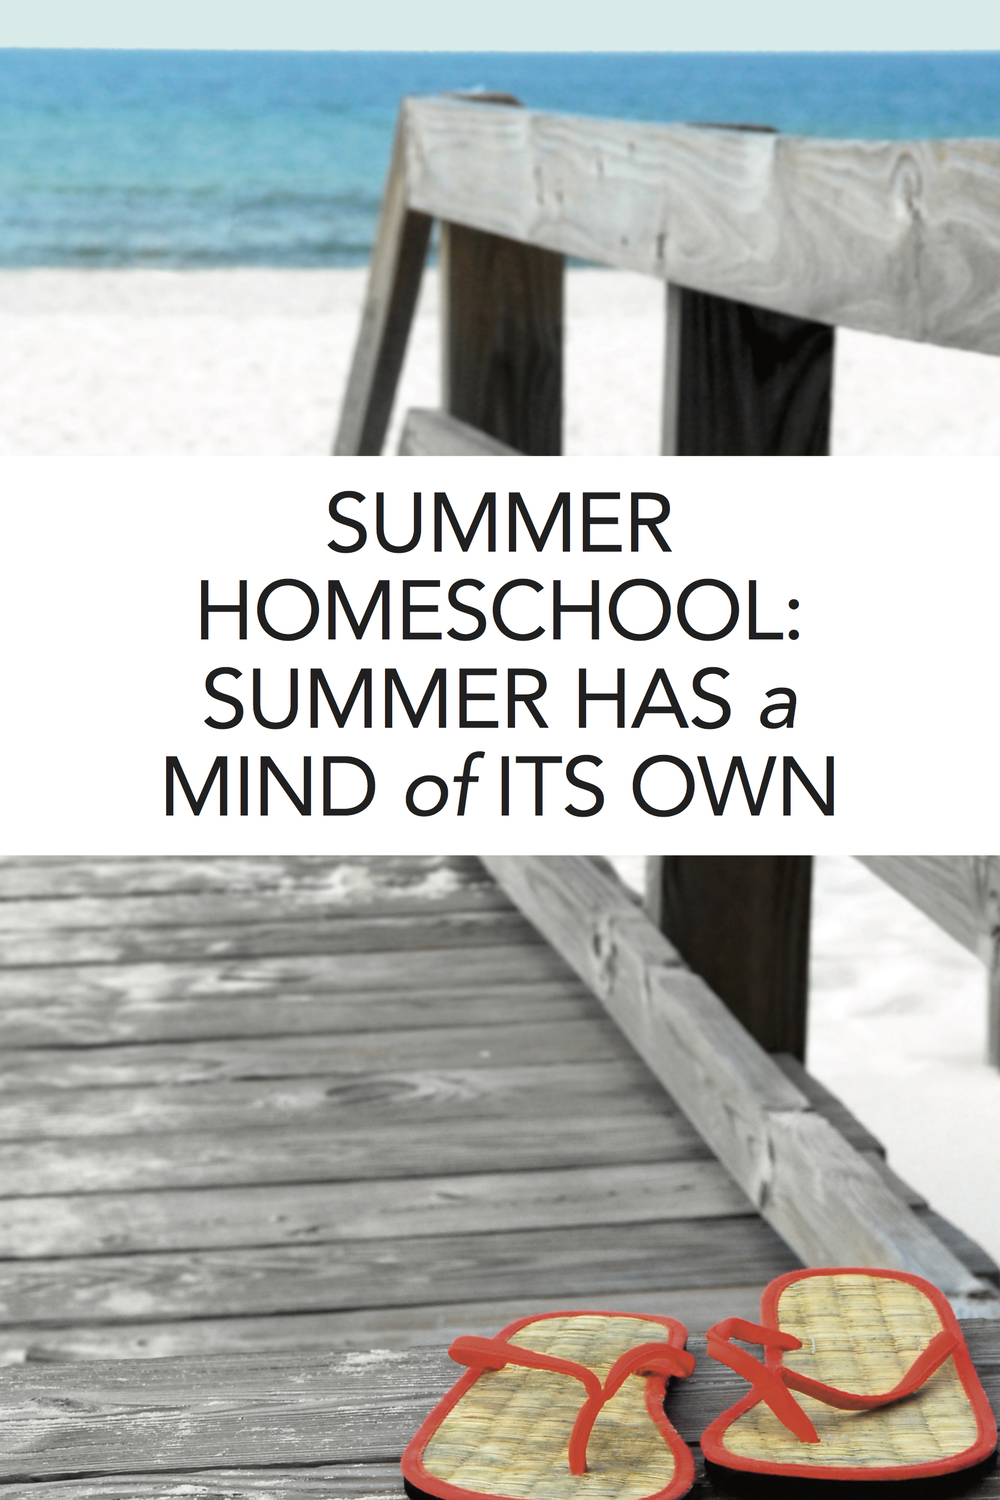 Summer homeschooling is all about going with the flow. Great read!